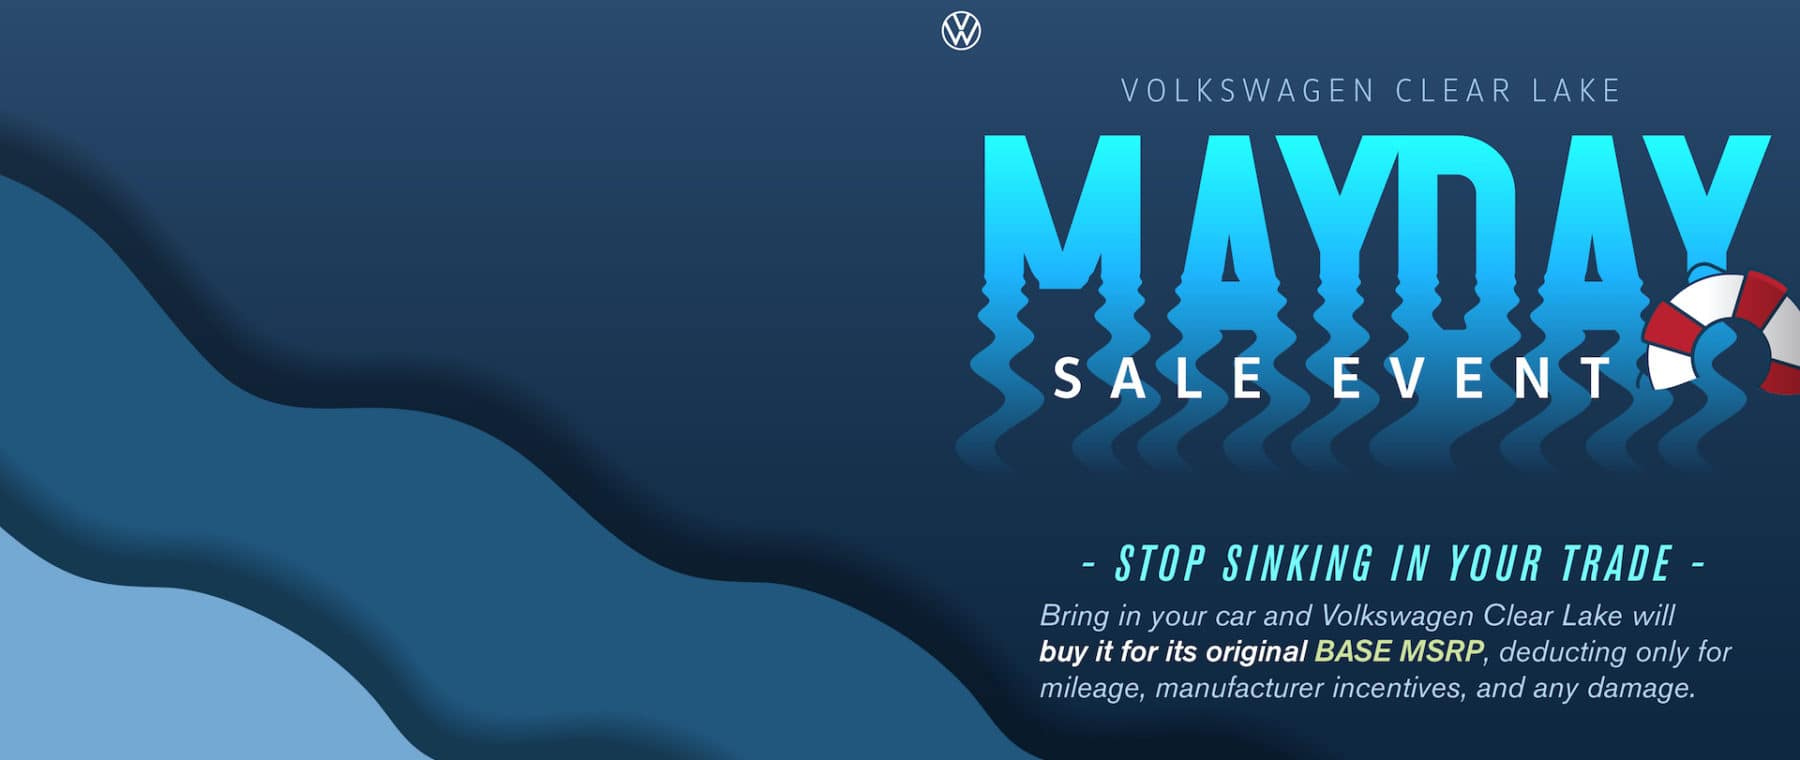 Volkswagen Clear Lake will rescue you from sinking in your trade during our Mayday sales event.